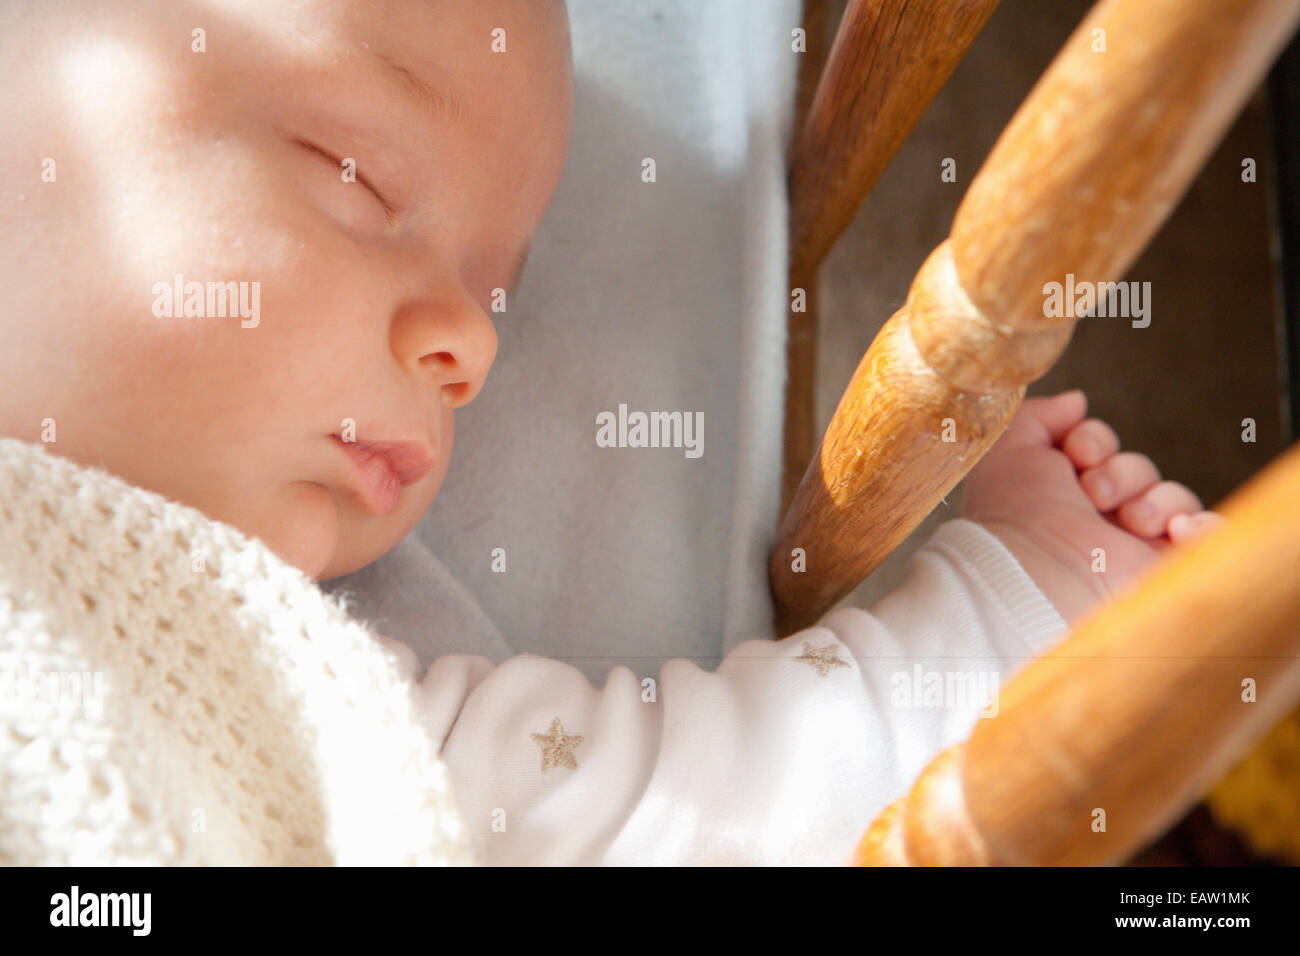 Baby asleep in crib - Stock Image